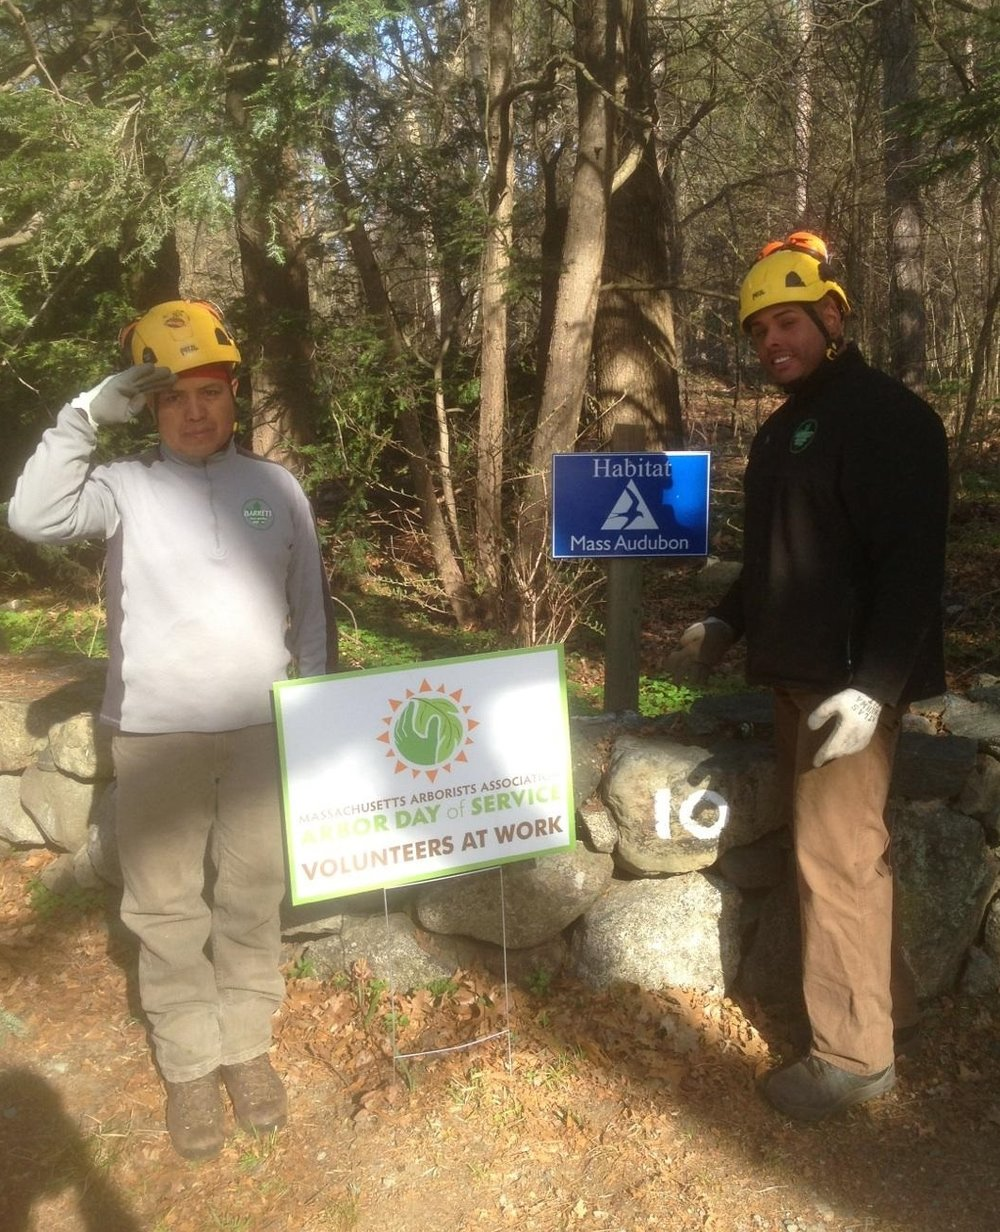 BTSE's Vincente & Roger volunteered their talents at Mass Audubon's Habitat Wildlife Sanctuary in Belmont.